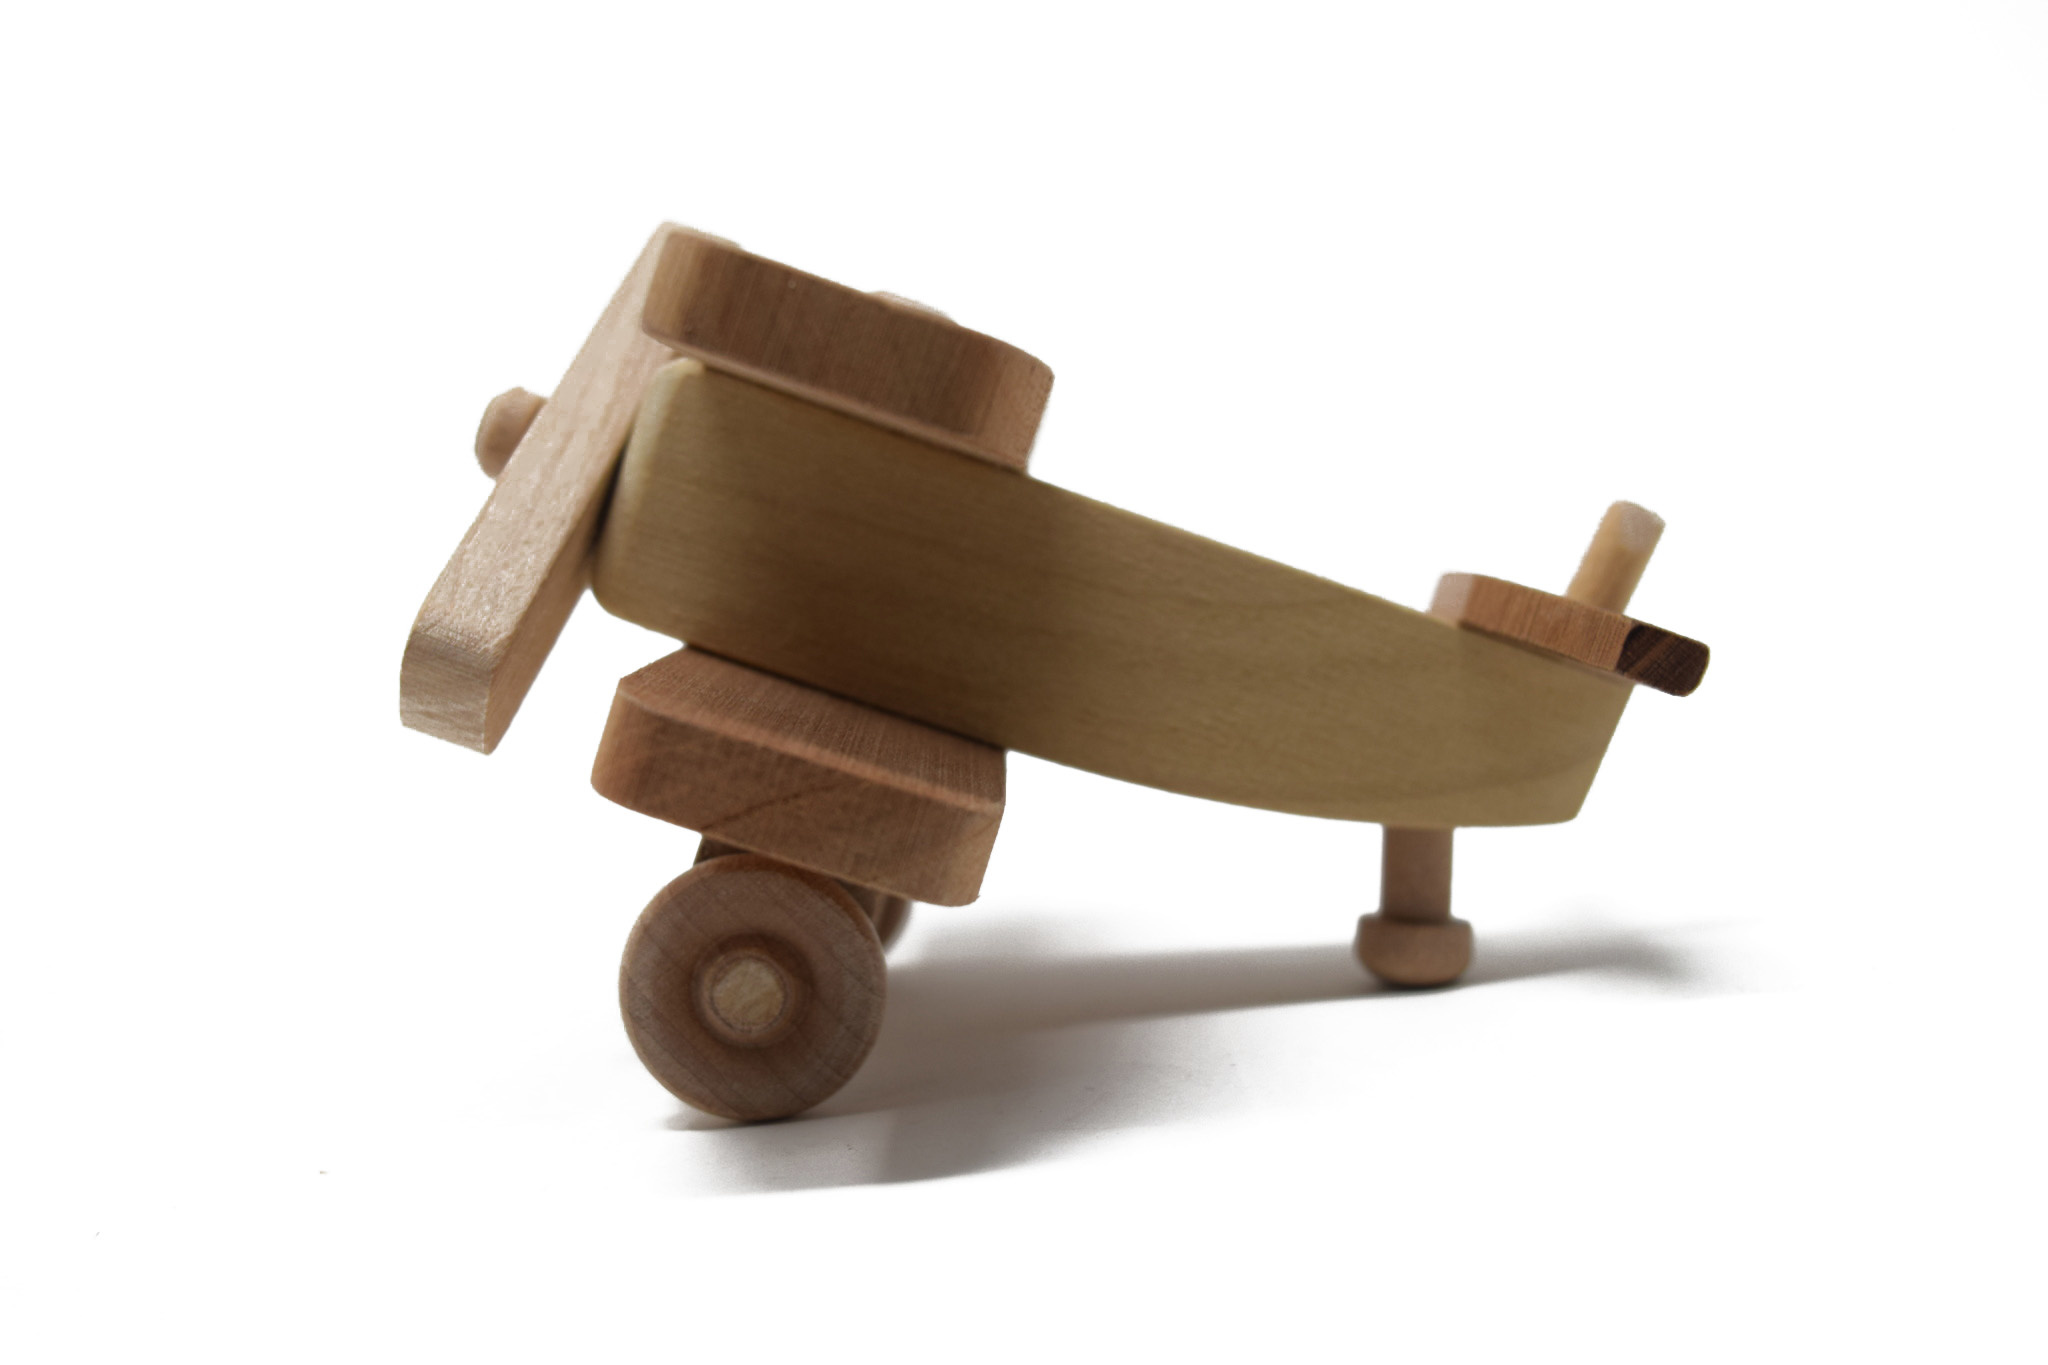 Wooden Airplane Toy-2